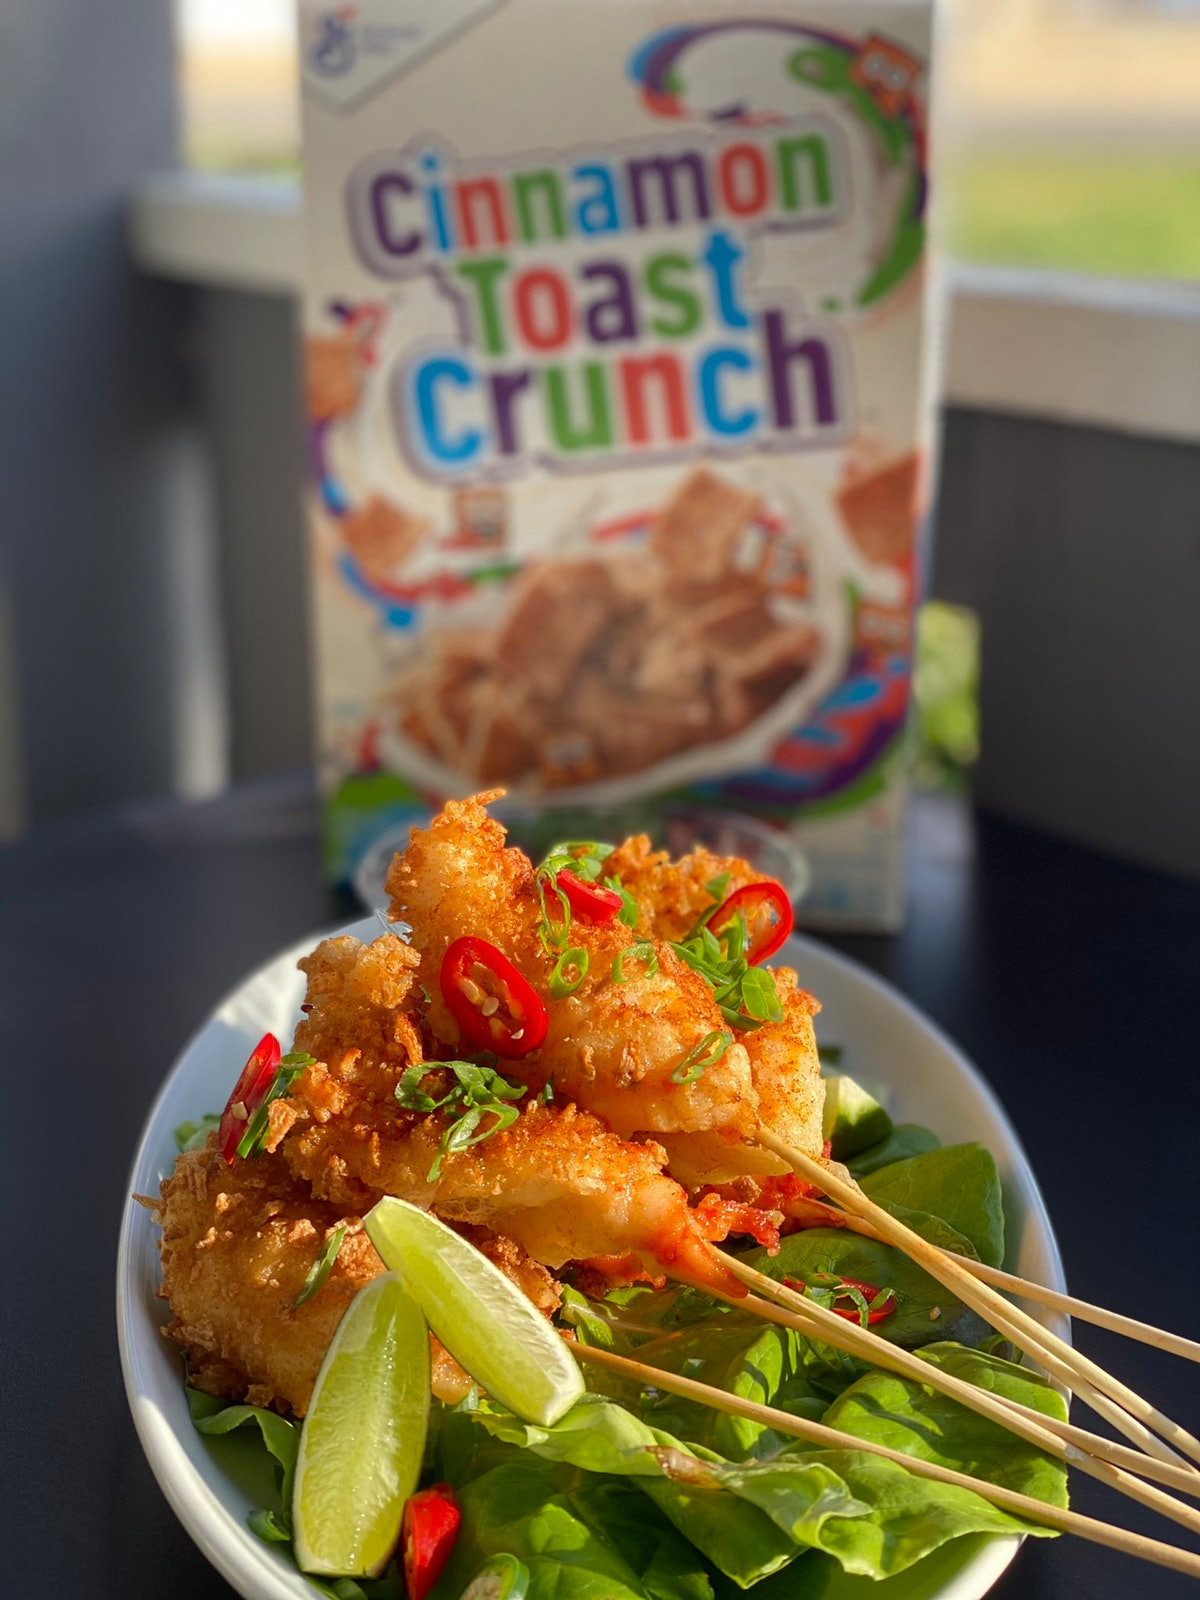 A plate of Cinnamon Toast Crunch tempura shrimp sits on a table in front of a box of Cinnamon Toast ...